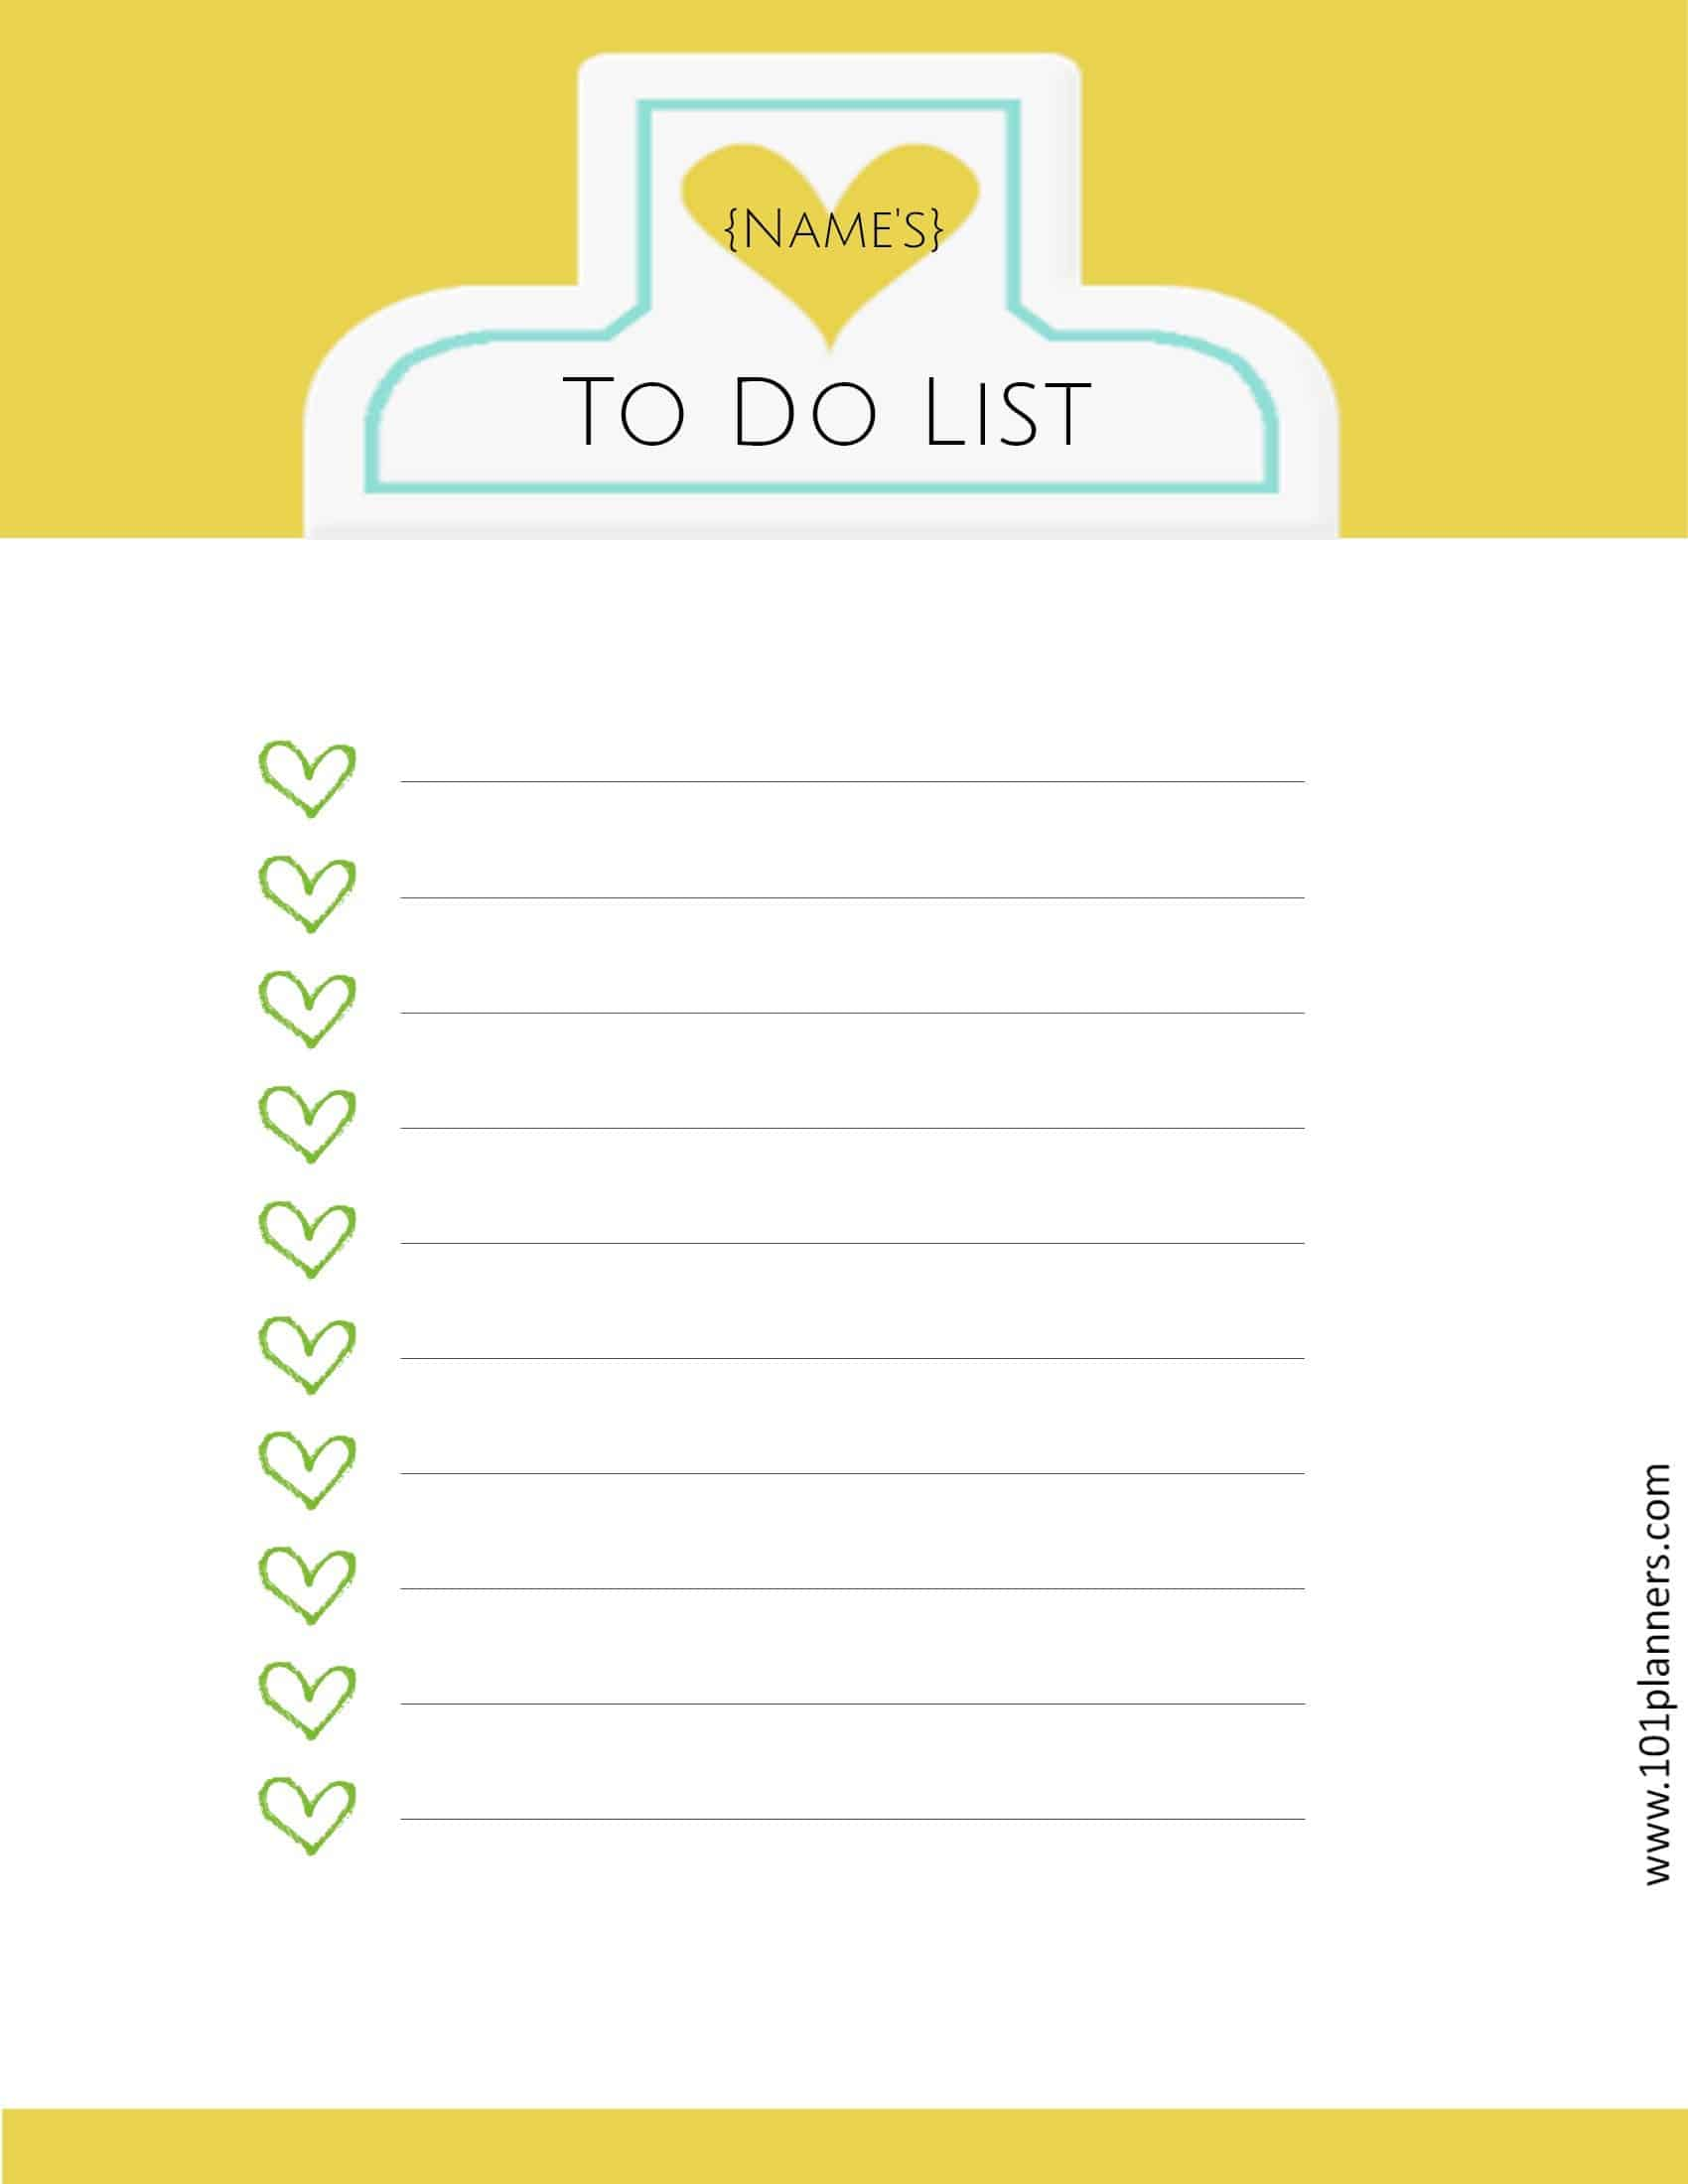 To Do Checklist With Green Hearts And A Yellow Background